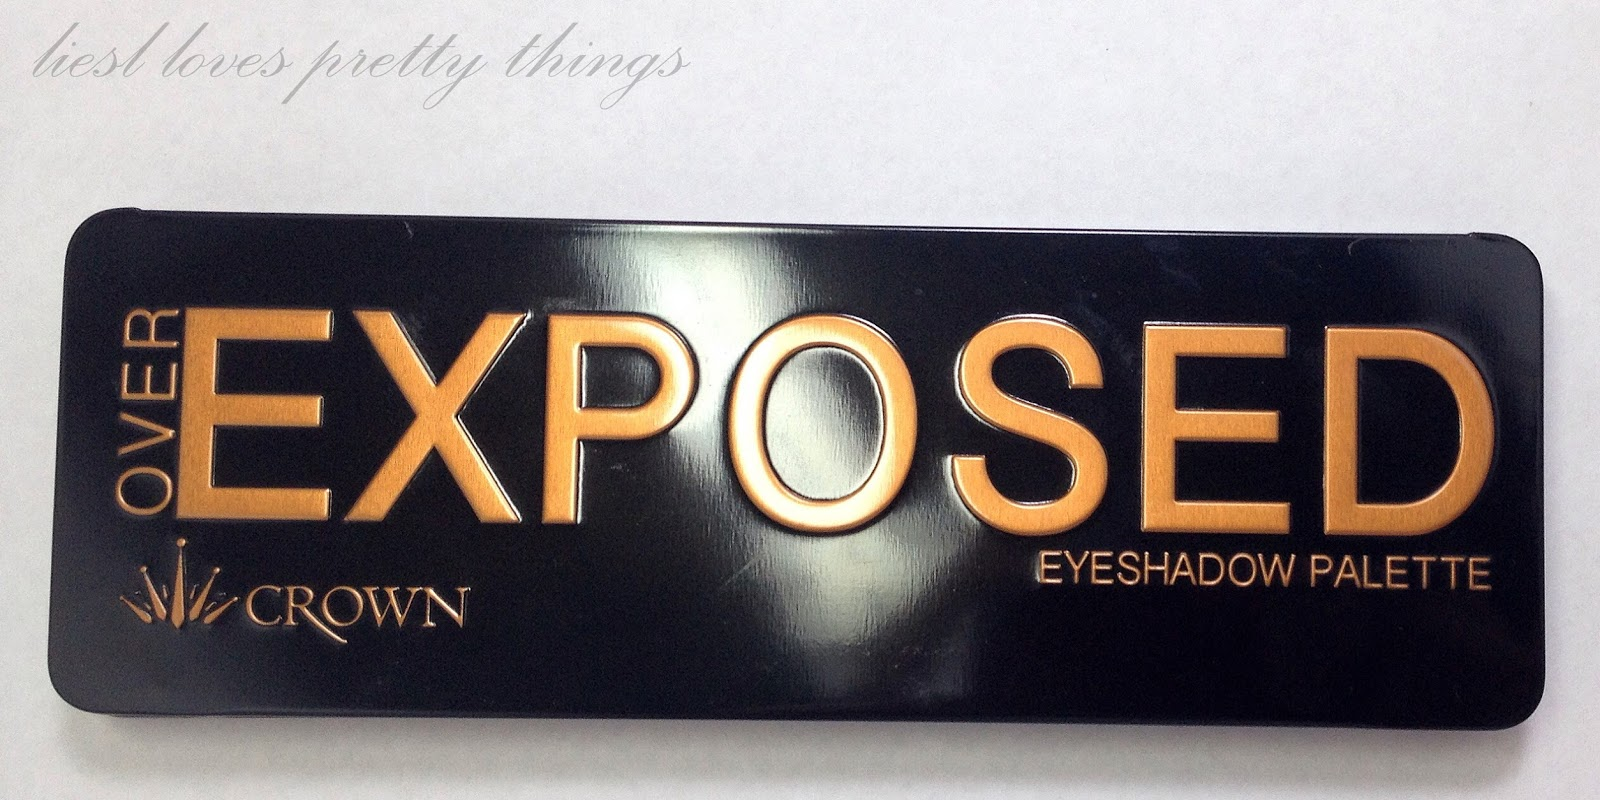 Crown Over Exposed Eyeshadow Palette swatches and review